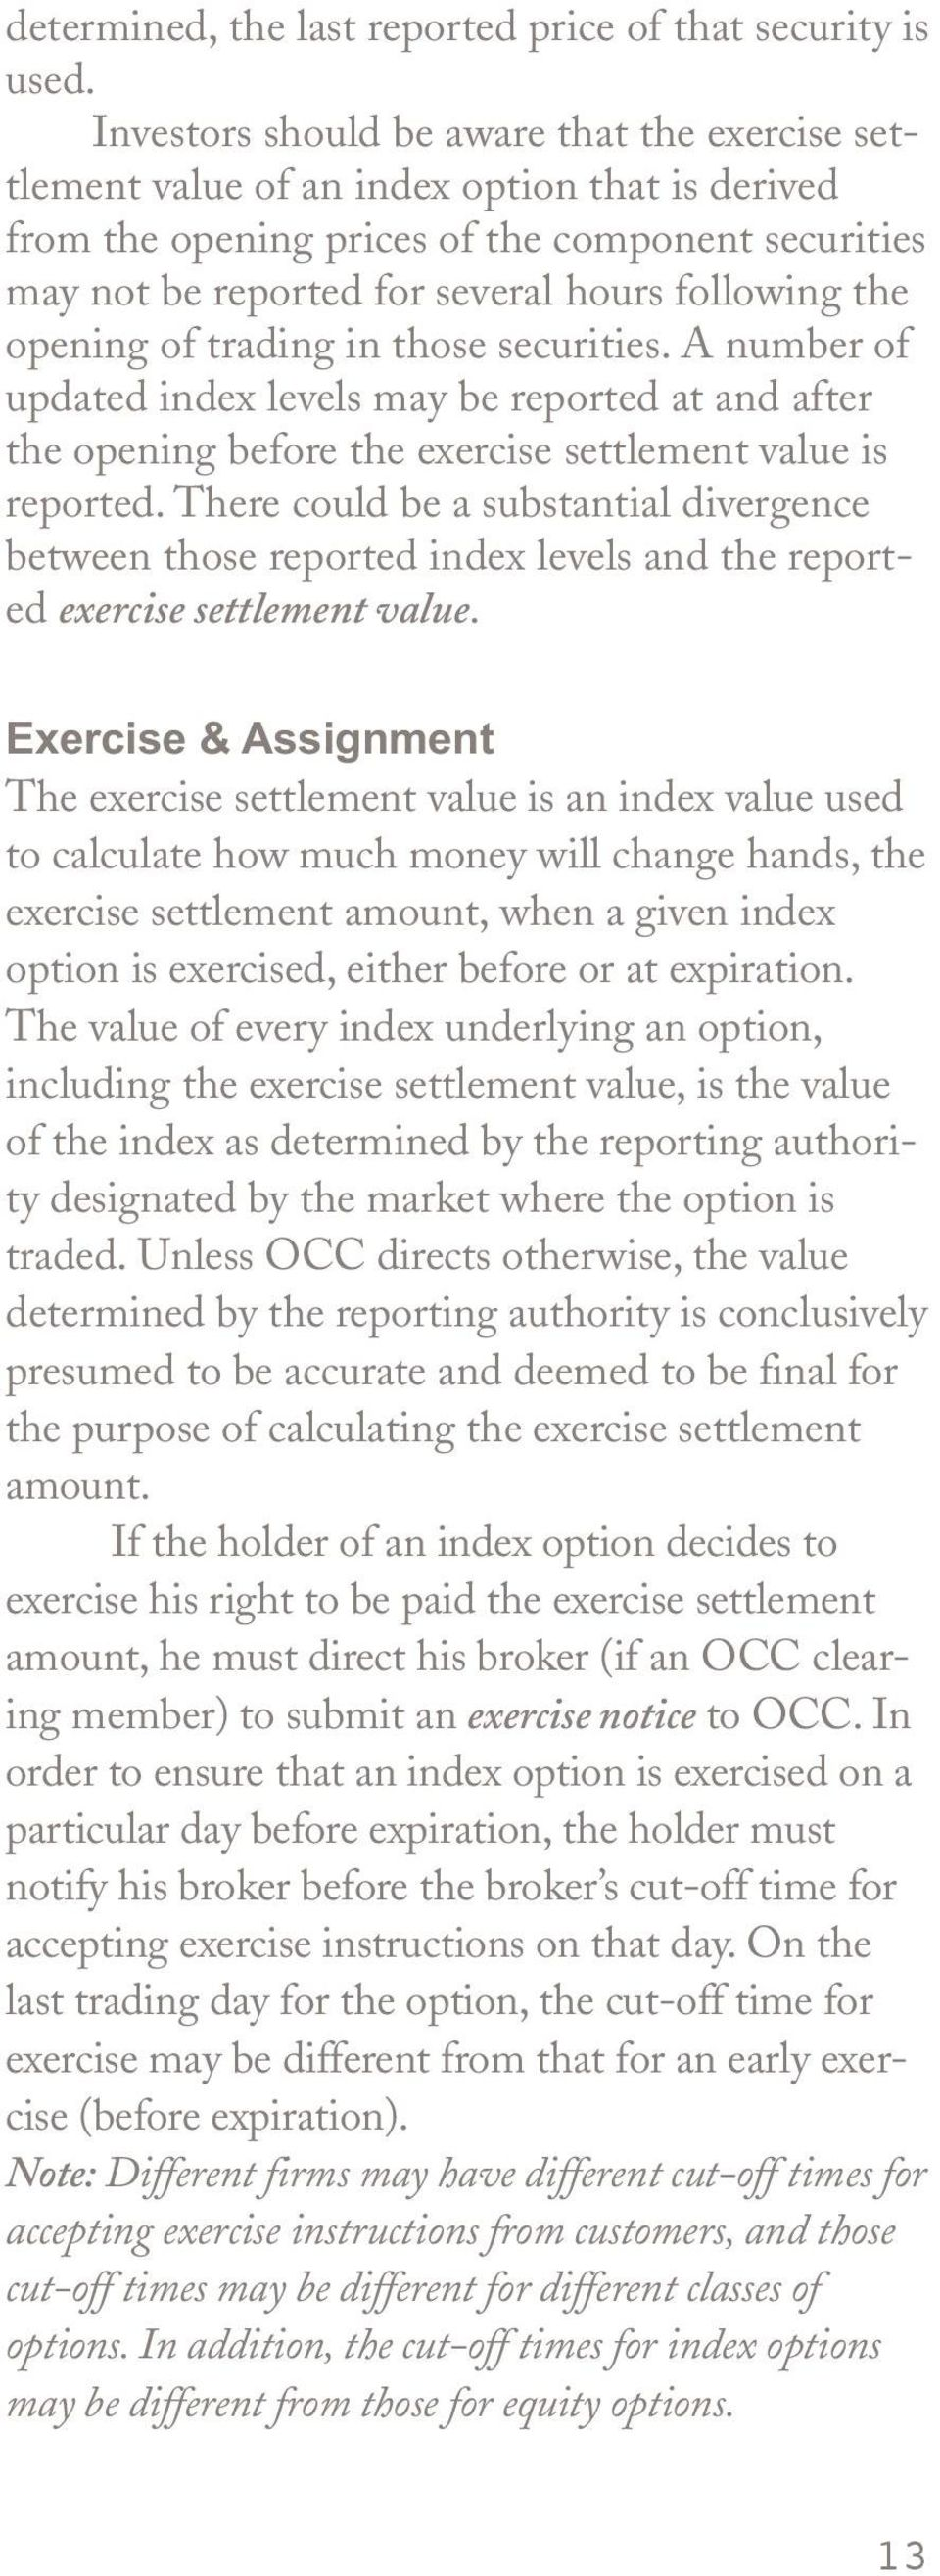 opening of trading in those securities. A number of updated index levels may be reported at and after the opening before the exercise settlement value is reported.